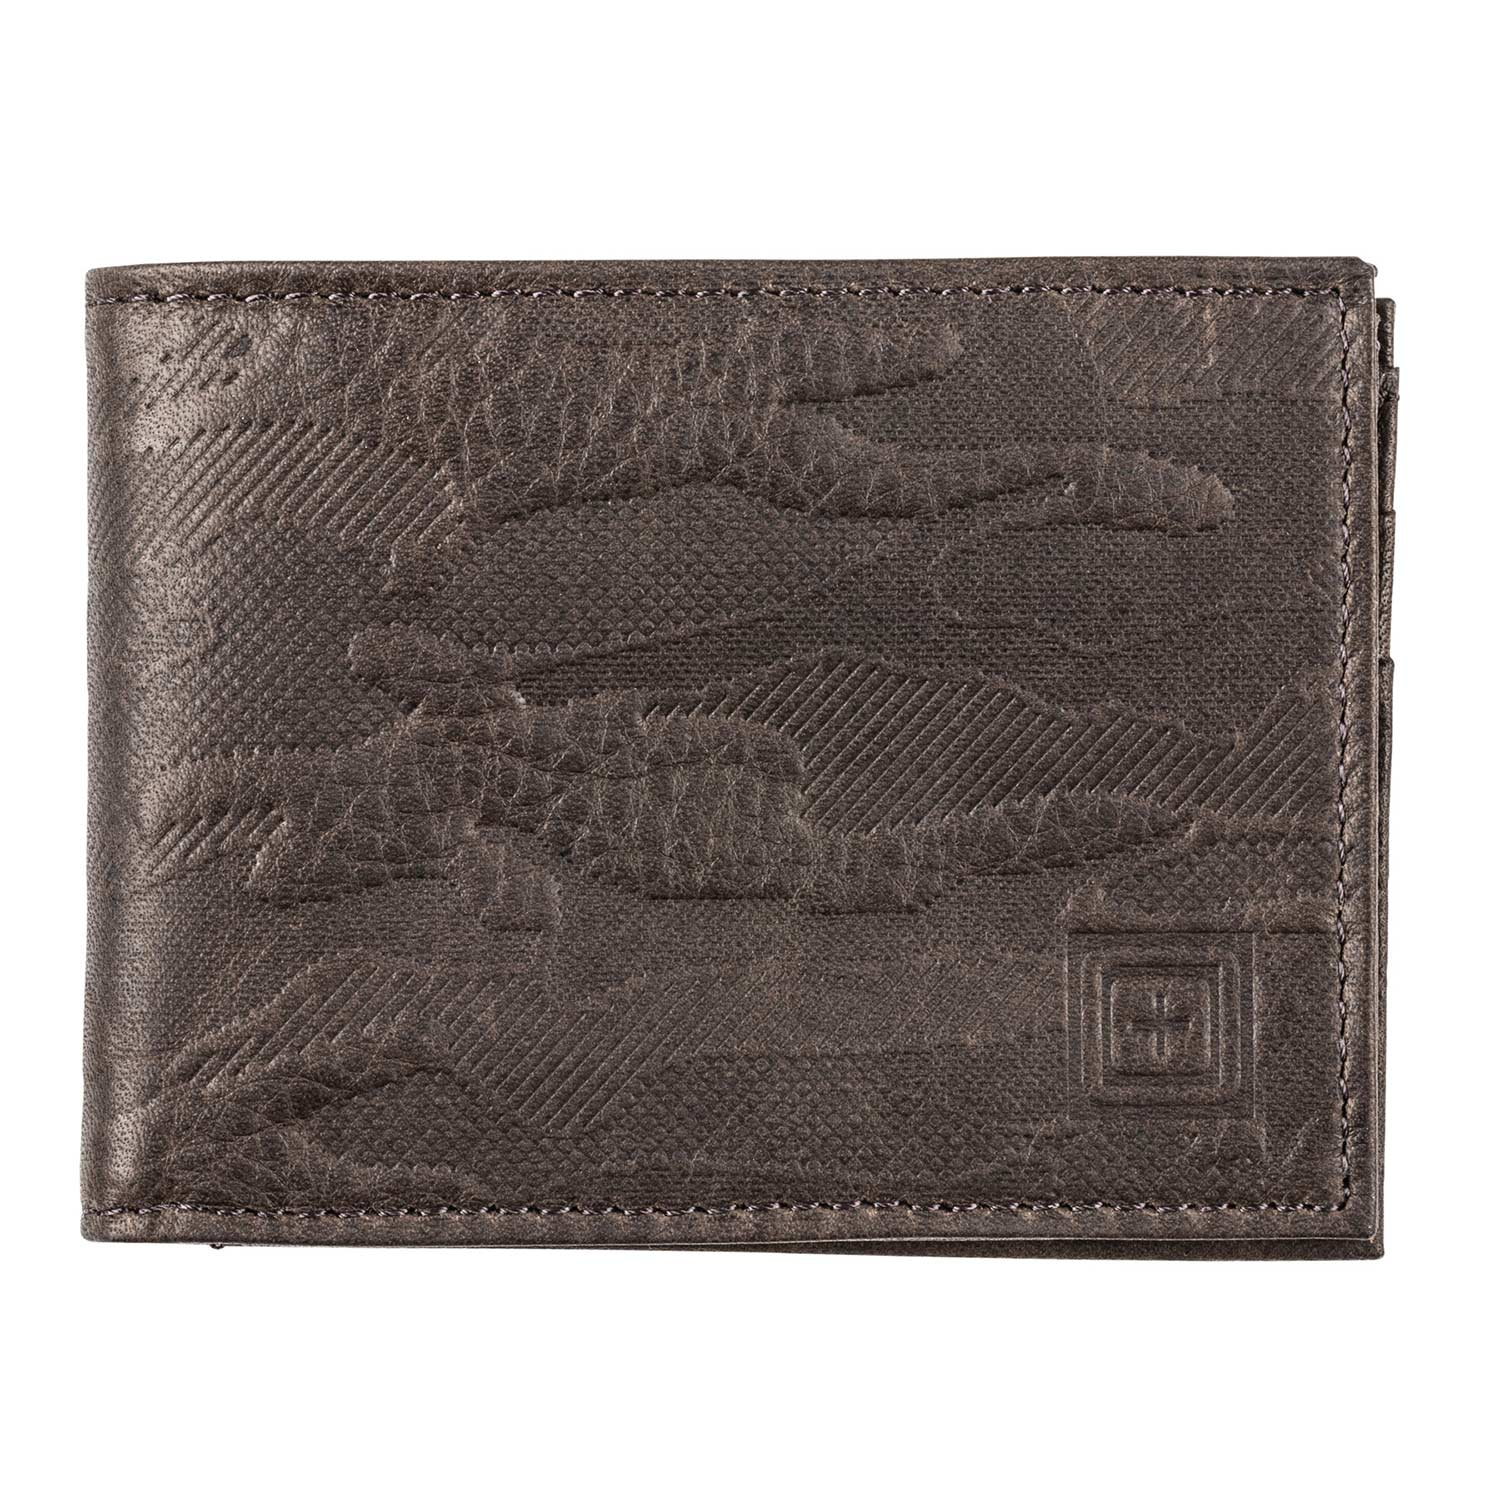 5.11 Wheeler Leather Bifold Wallet with RFID Shield